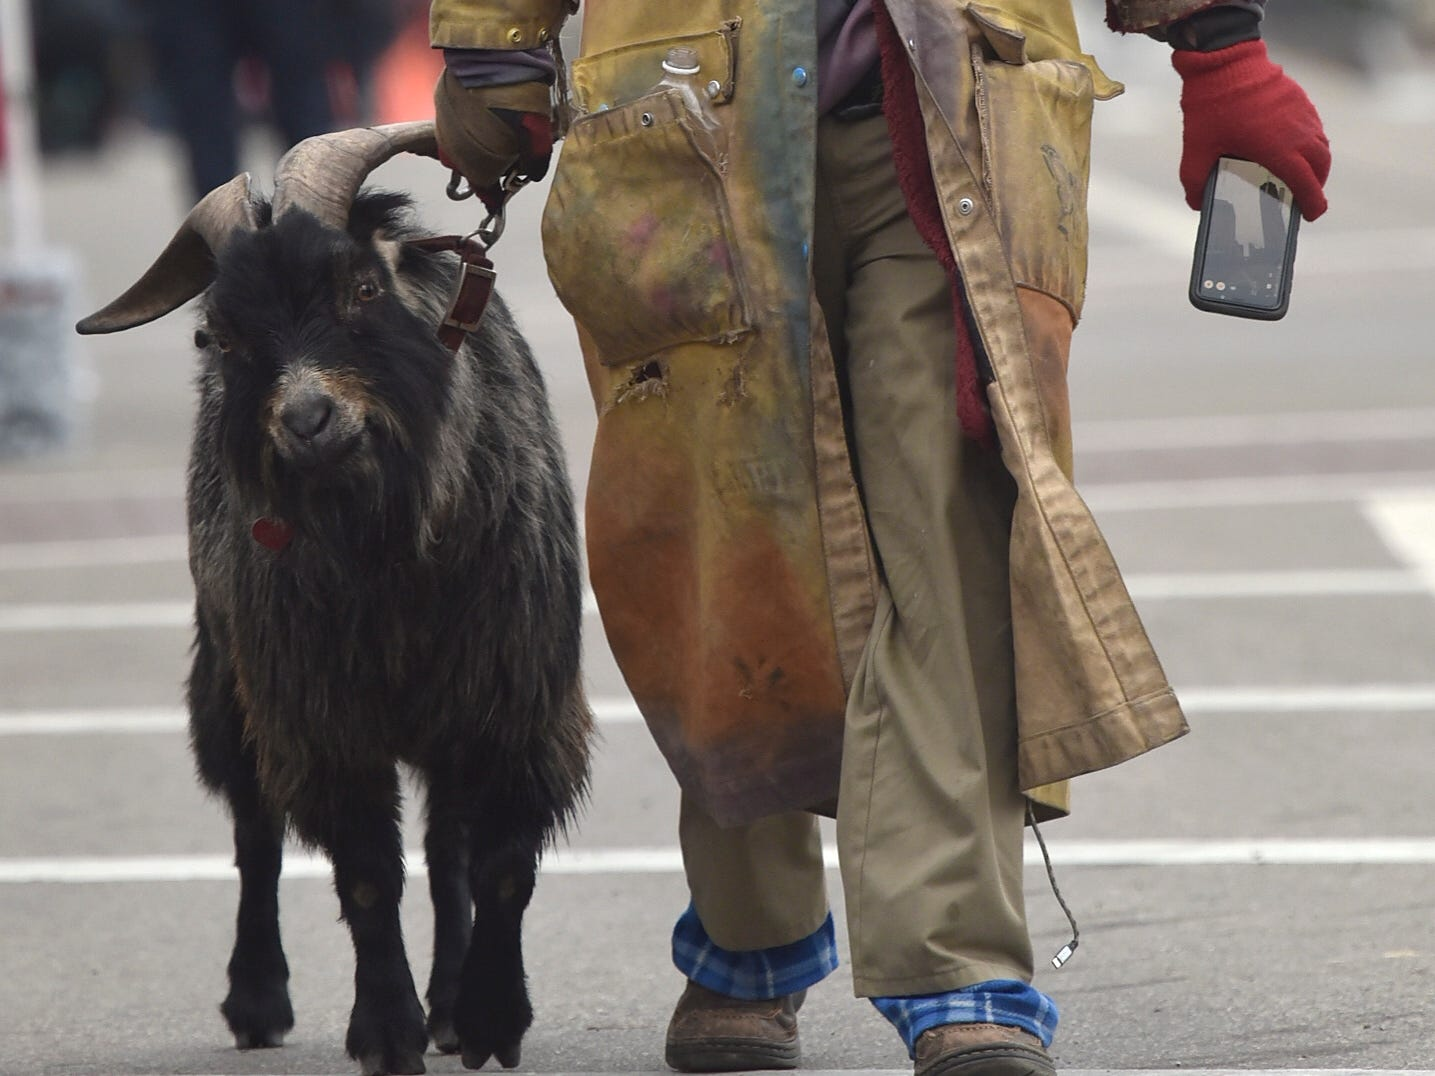 Erick Brown, of Detroit, leads his six-year-old male goat named Deer.